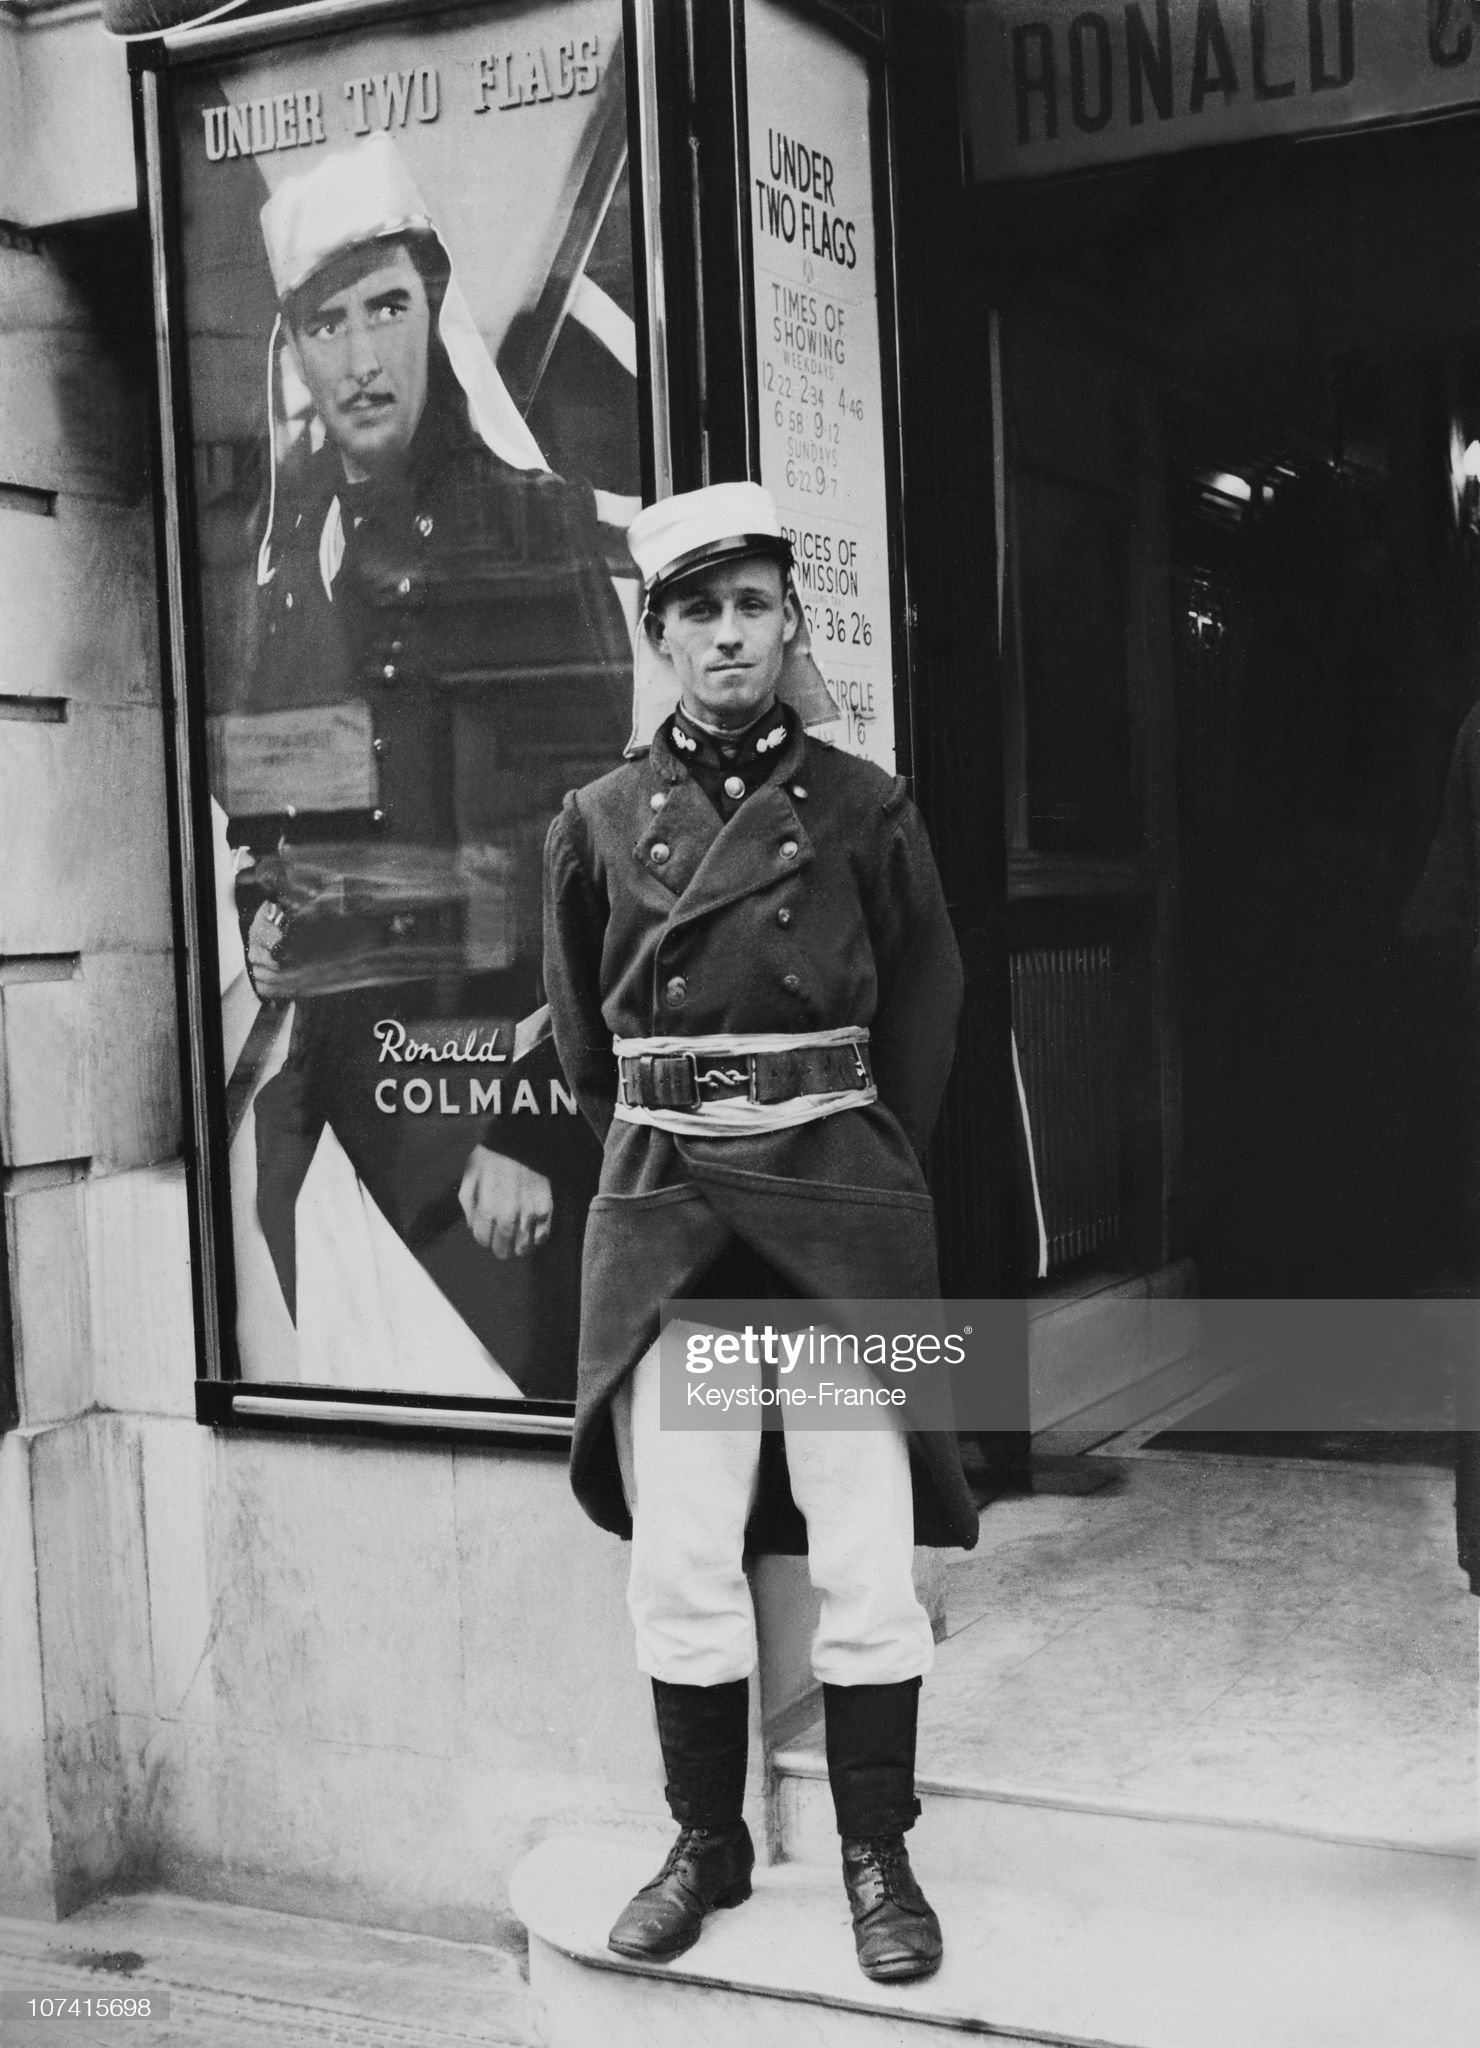 Image du 23/07/2020 French-legionnaire-in-front-of-poster-of-under-two-flags-film-in-on-picture-id107415698?s=2048x2048